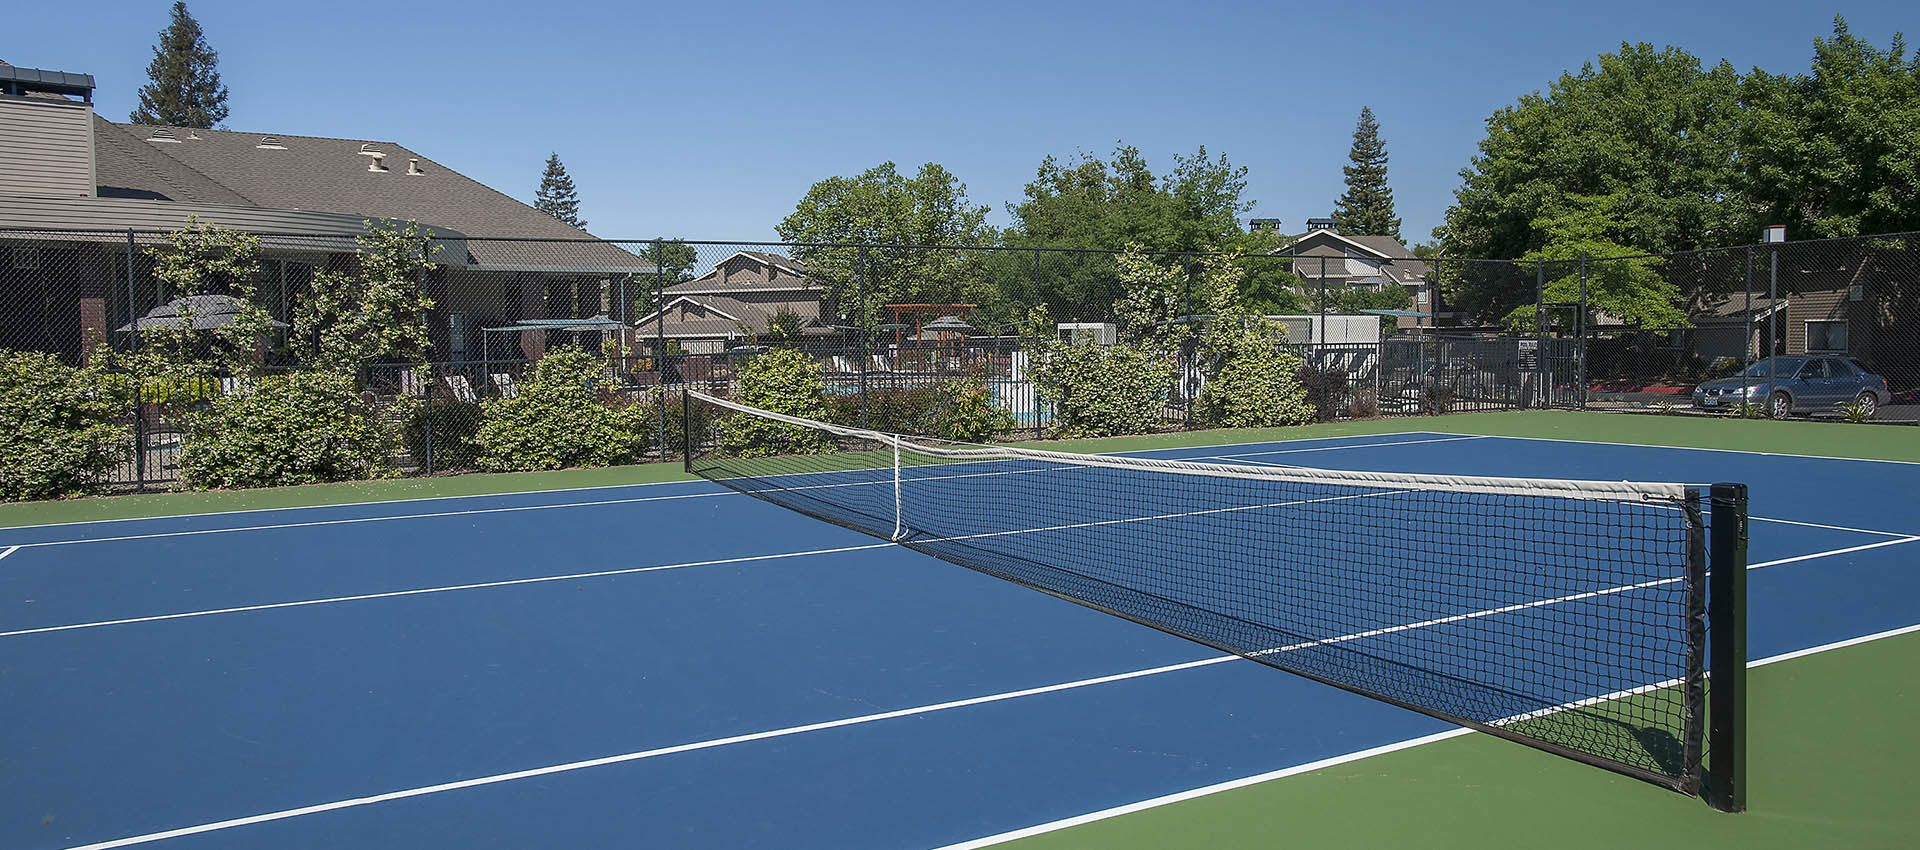 Resort Style Tennis Courts at Deer Valley Apartment Homes in Roseville, California